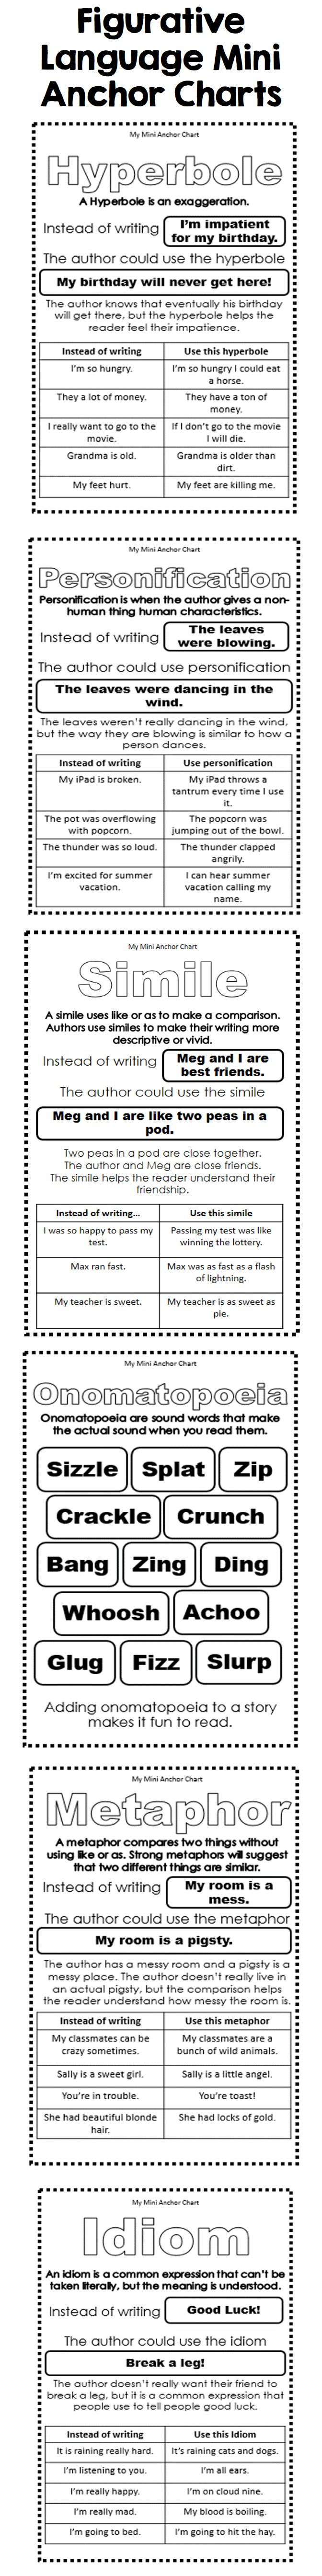 best ideas about simile similes and metaphors product includes mini anchor charts for similes metaphors personification hyperbole idioms and onomatopoeia mini anchor chart includes